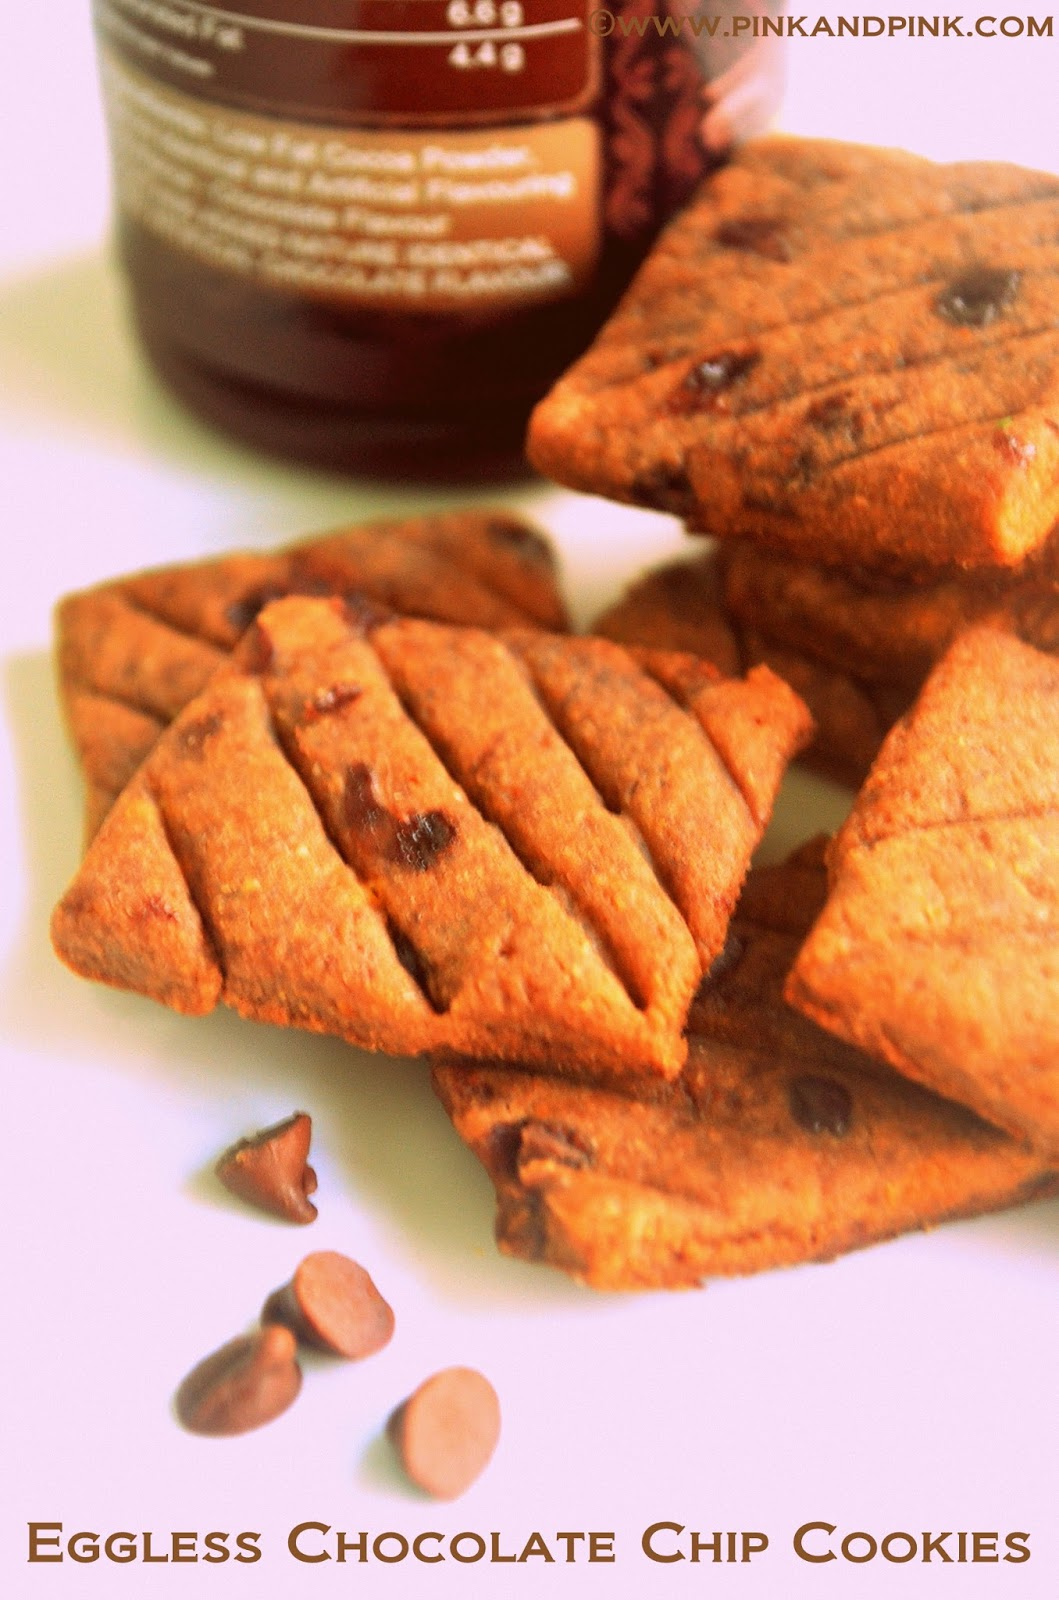 Eggless Chocolate Chip Cookies | Chocolate Chip Cookies Recipe ...